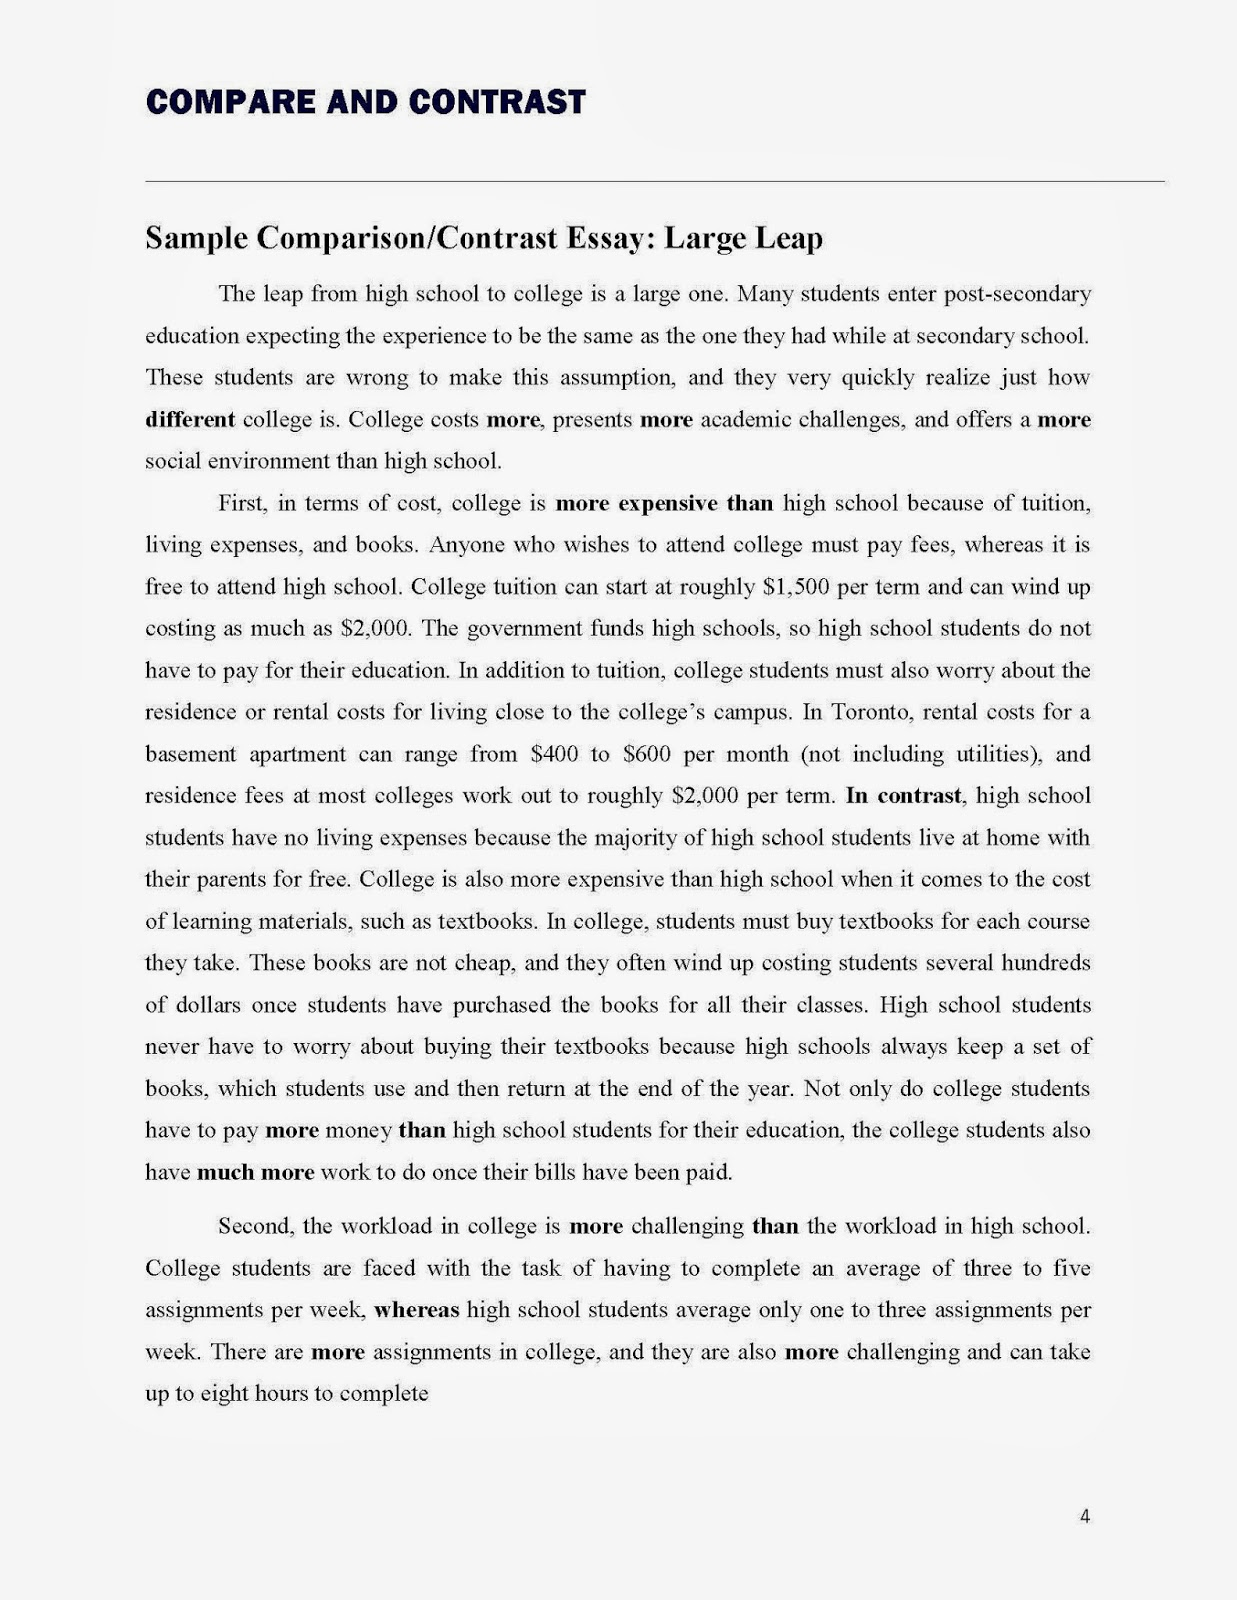 How to write a four paragraph compare contrast essay